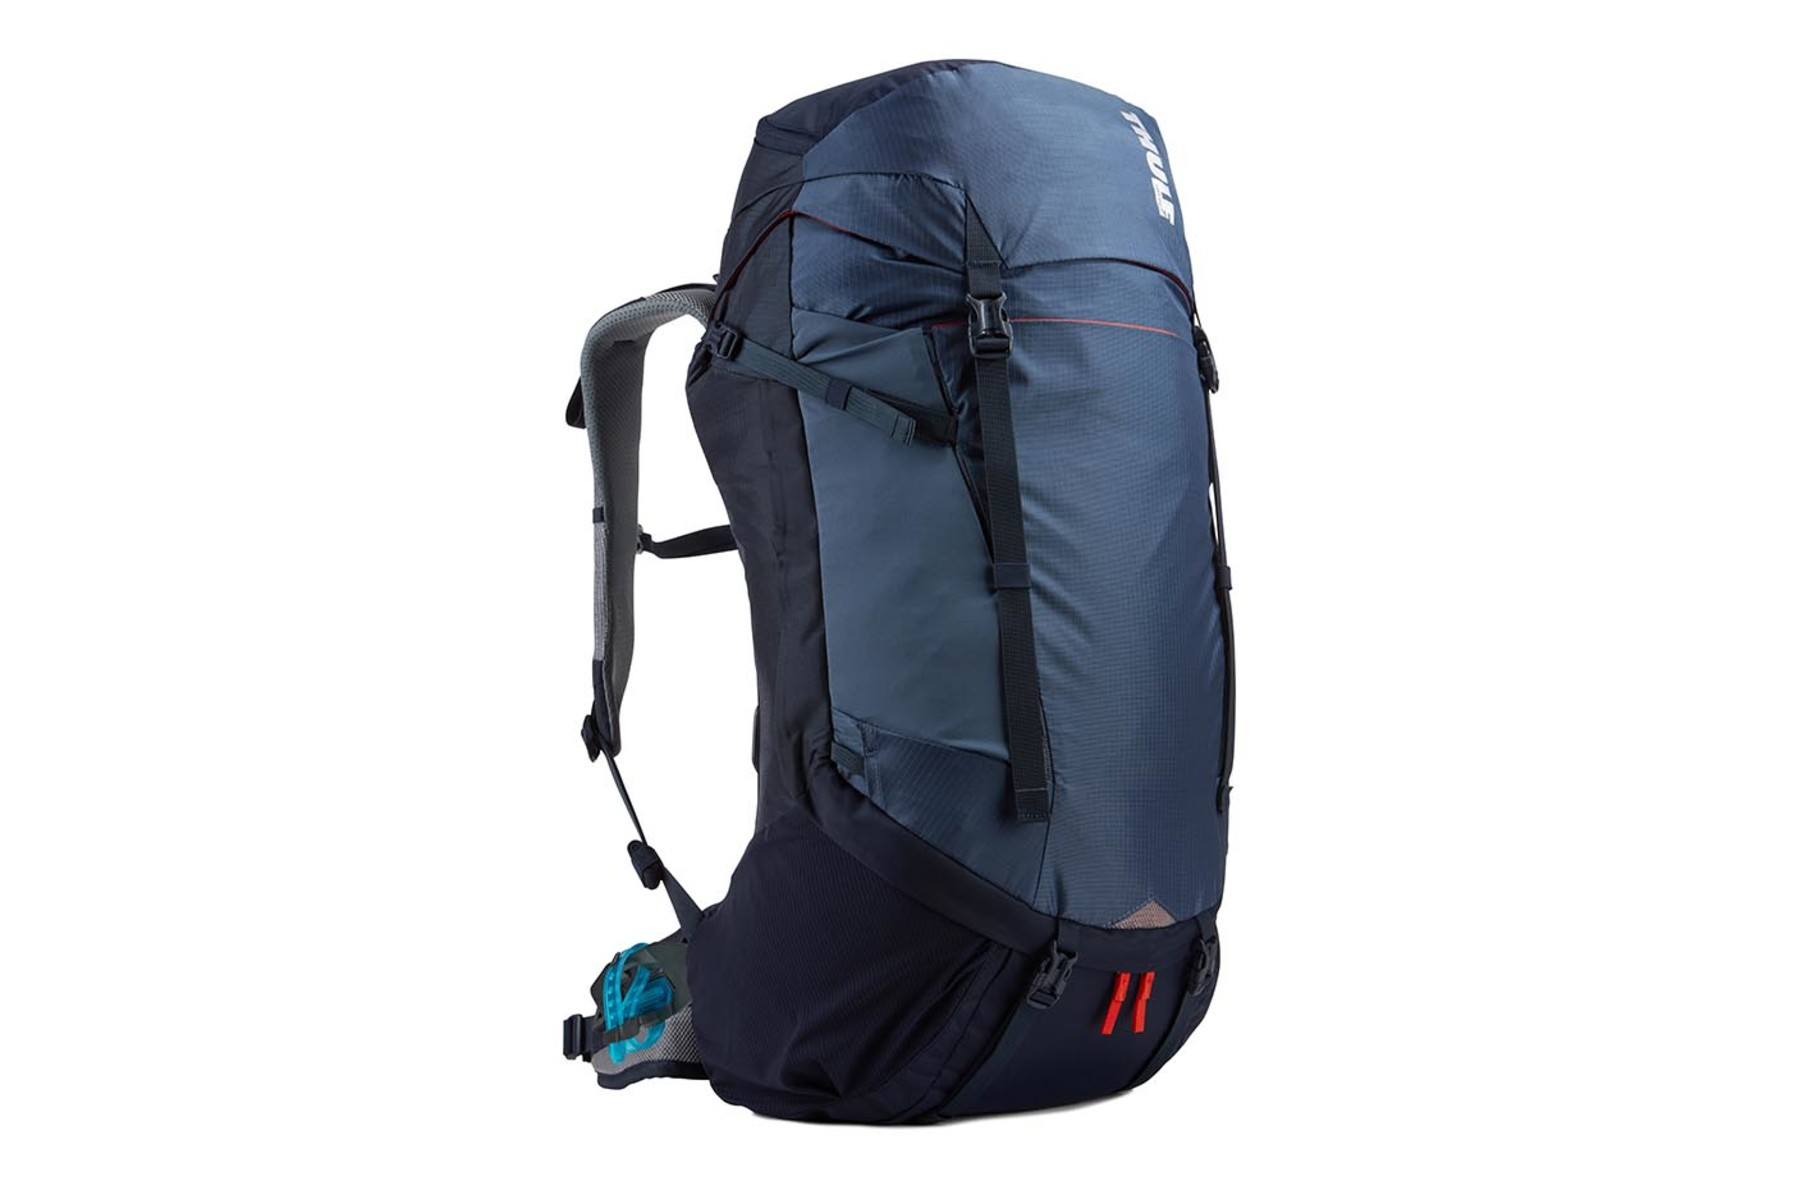 746 Best Backpacks for hiking images | Backpacks, Hiking